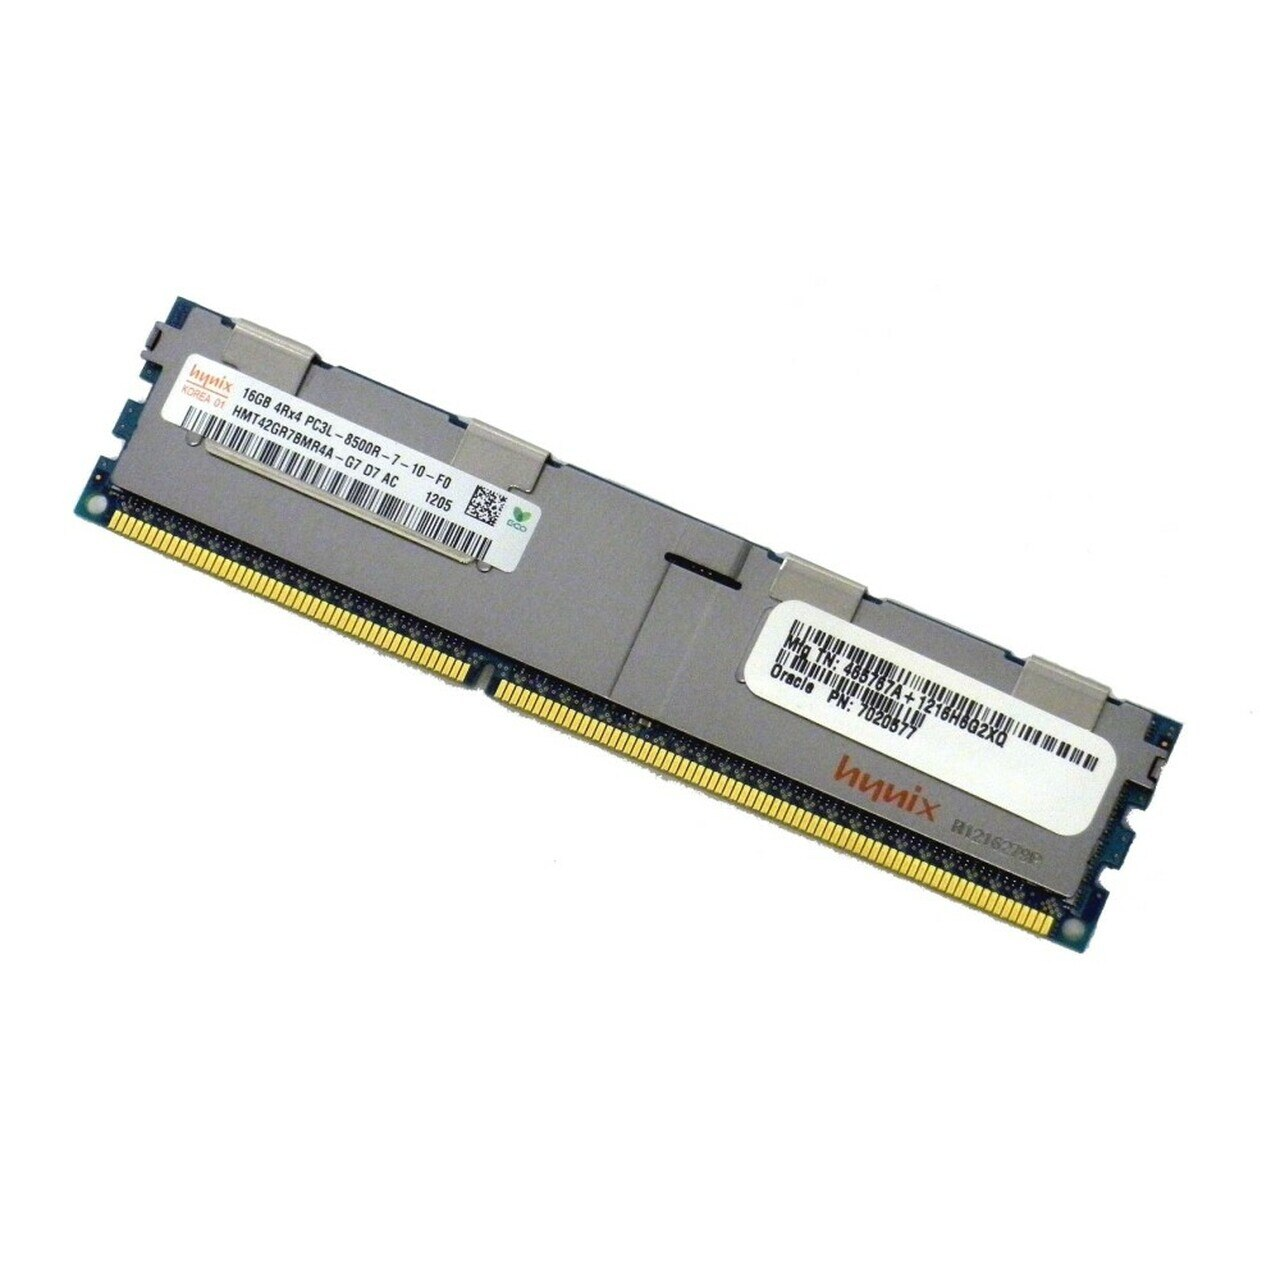 Buy & save on Oracle Sun Server Memory RAM from your trusted partners at Flagship Technologies. Browse our extensive inventory of Oracle Sun server spare parts below and get the best deals to maintain or upgrade your IT project or data center.